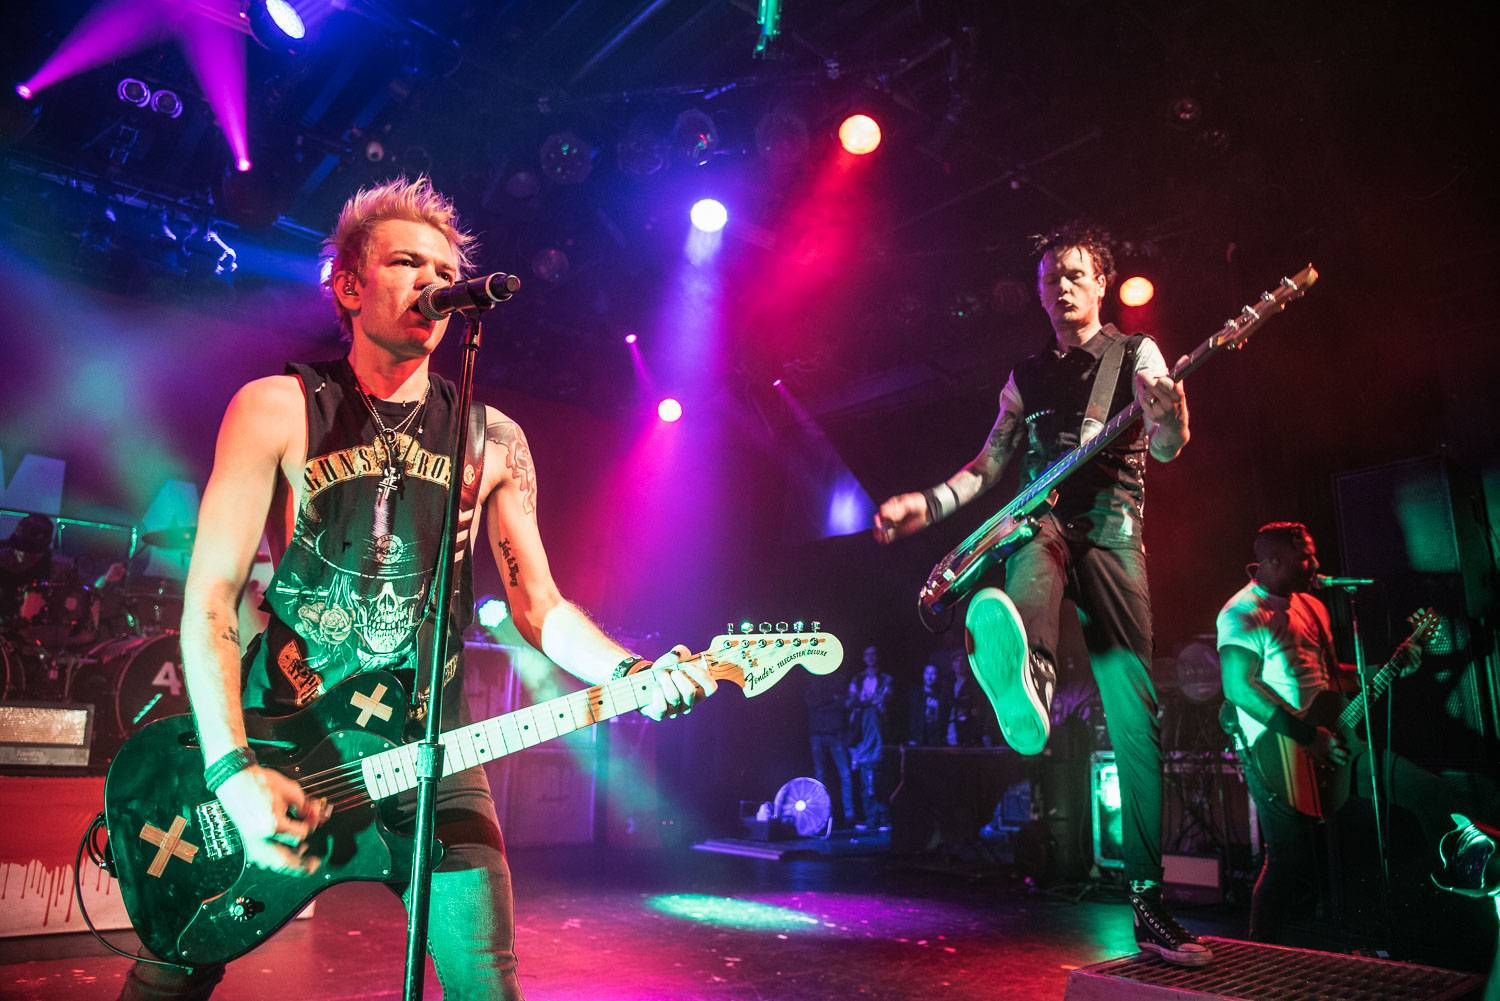 Sum 41 at the Commodore Ballroom, Vancouver, Oct. 28 2016. Pavel Boiko photo